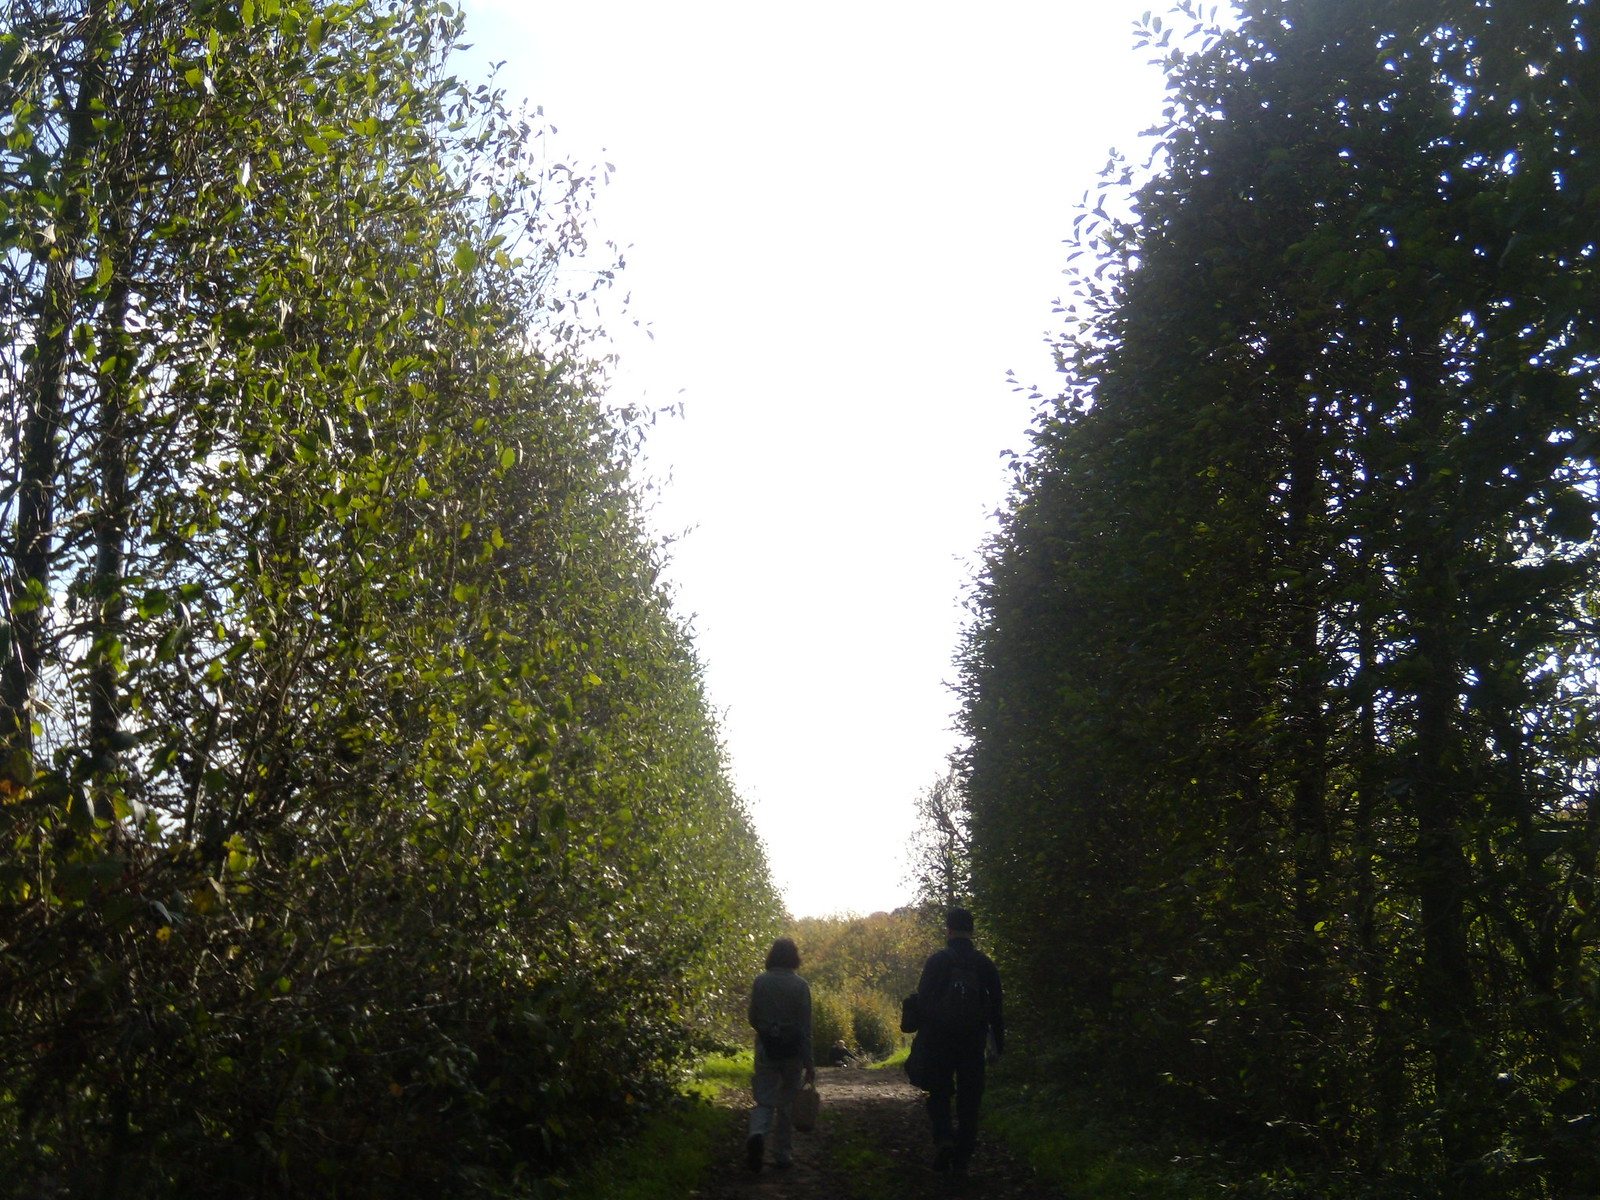 Through an orchard Sevenoaks Circular